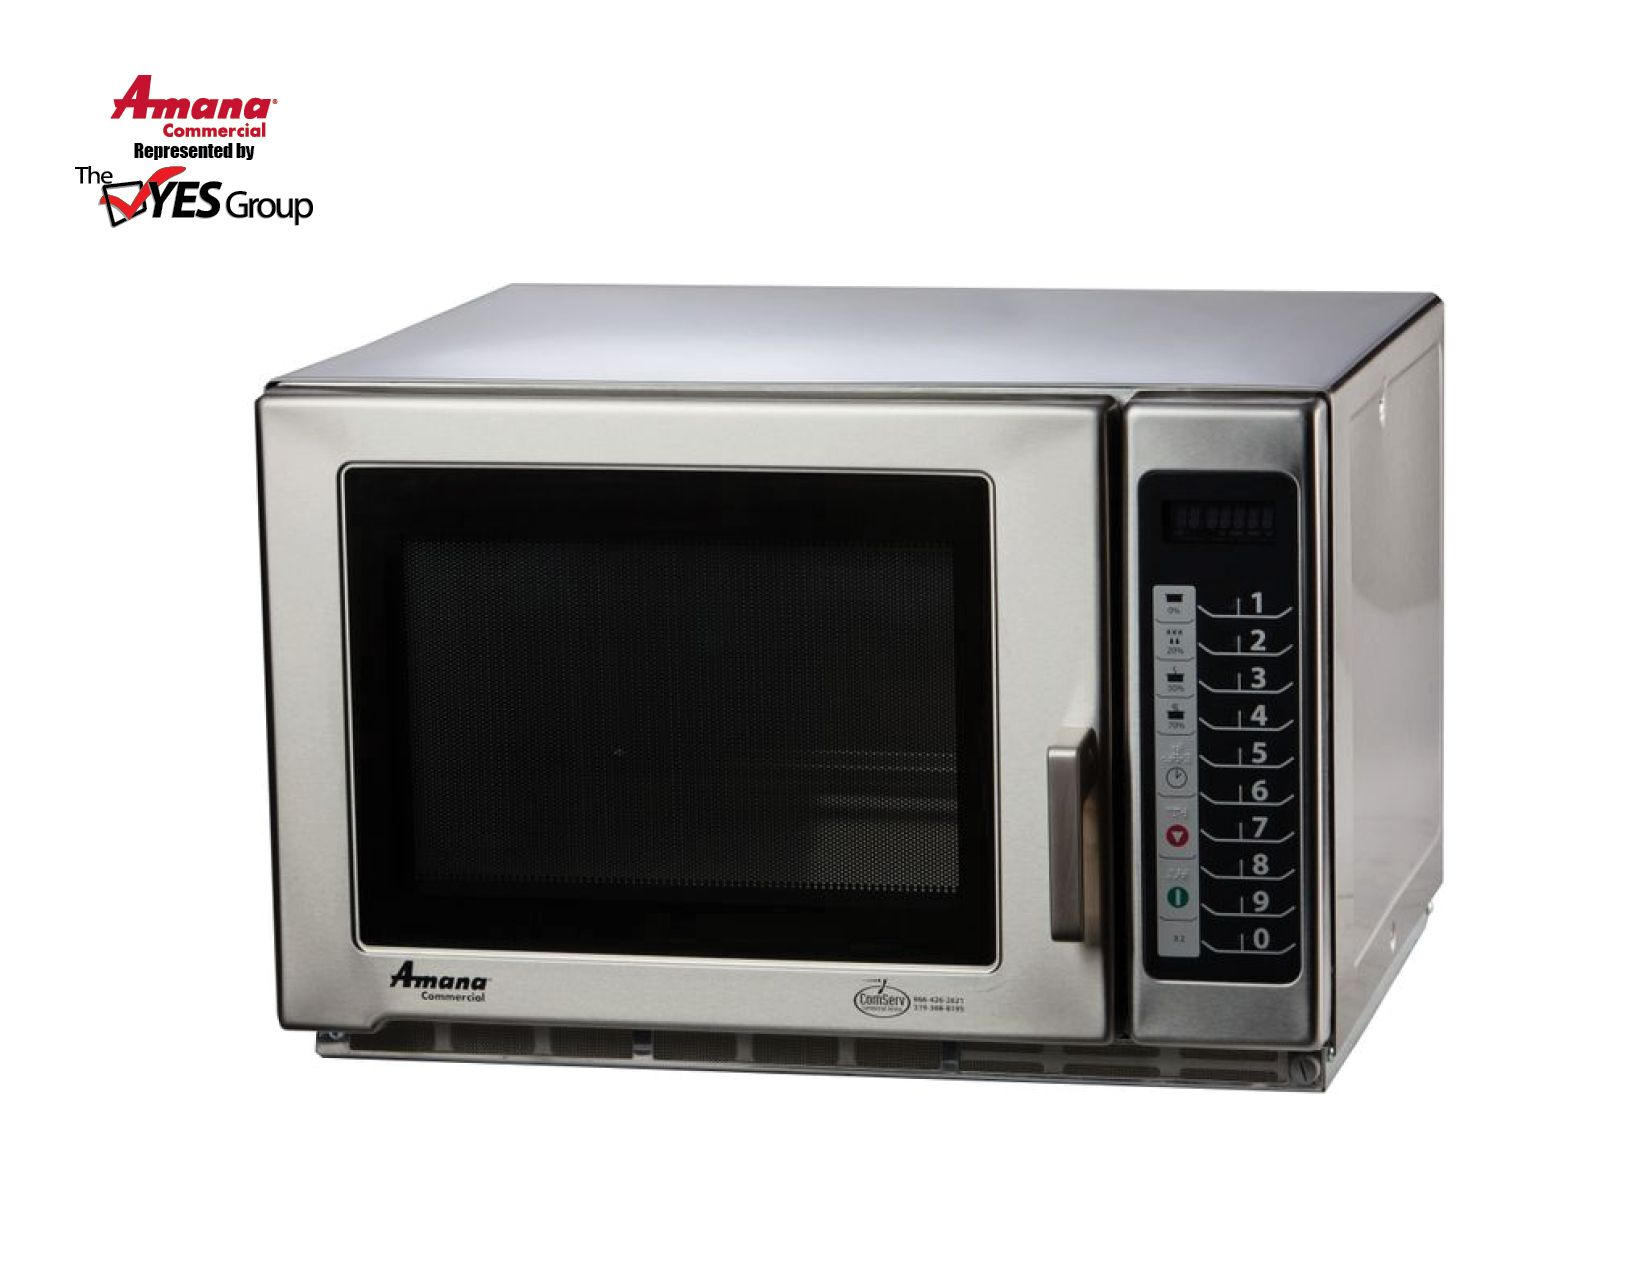 Rfs12ts By Amana Commercial Countertop Microwave Oven Microwave